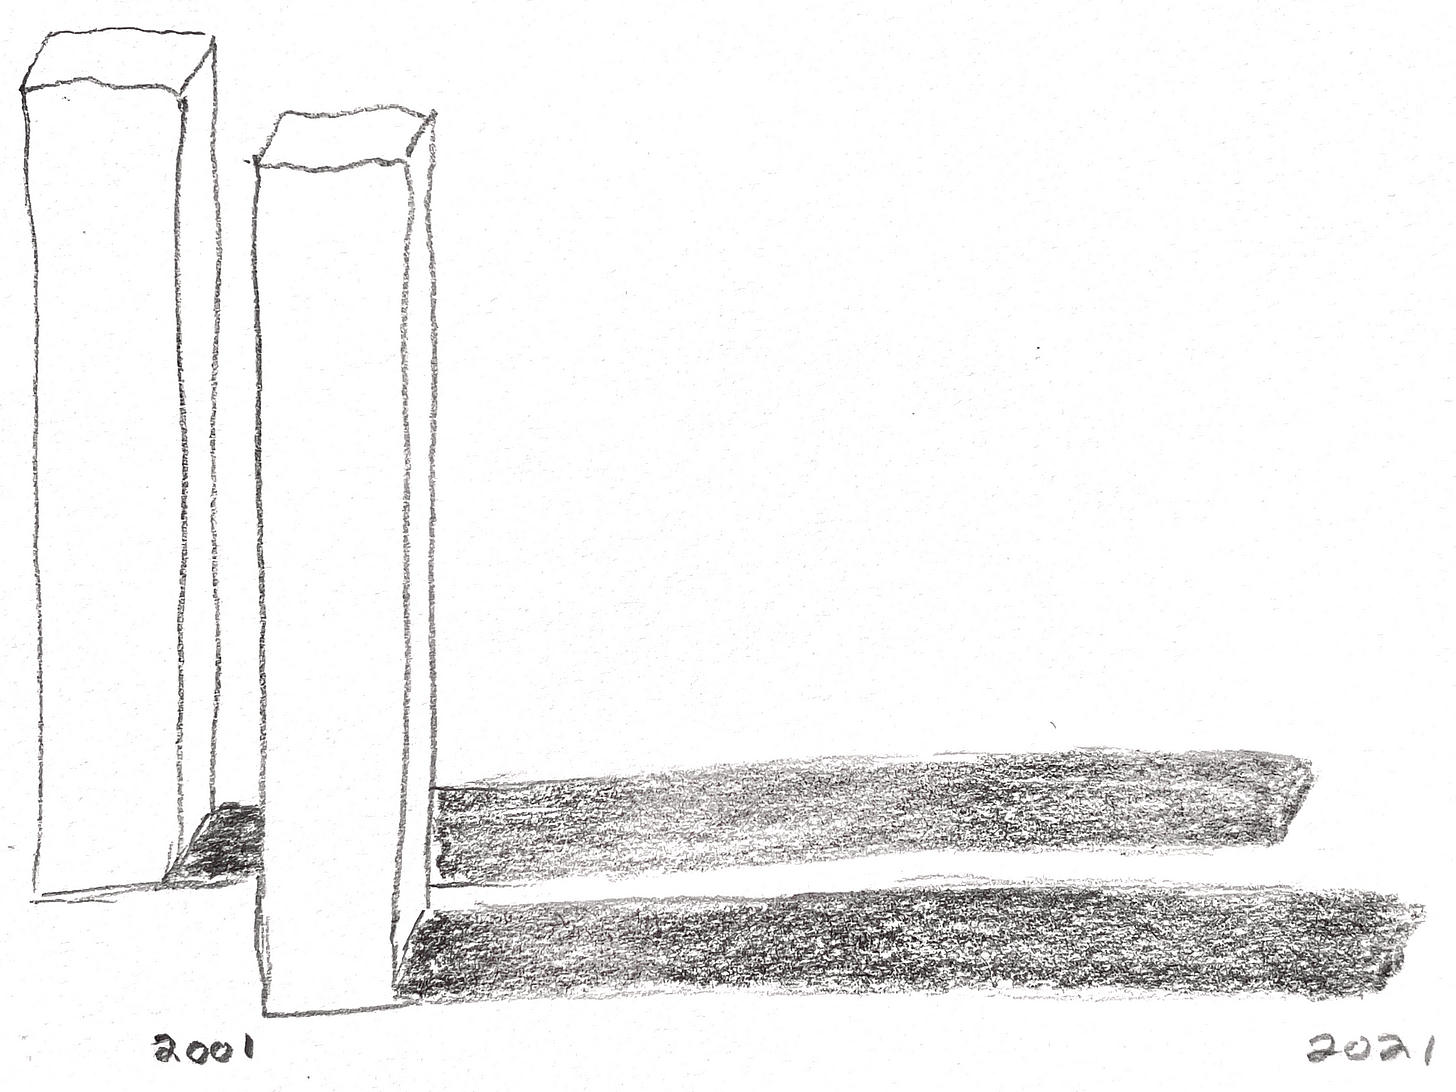 line drawing of the Twin Towers in New York pre-9/11, each casting a shadow off to the right. Underneath the towers is written 2001, and underneath the end of the shadows at the right is written 2021.